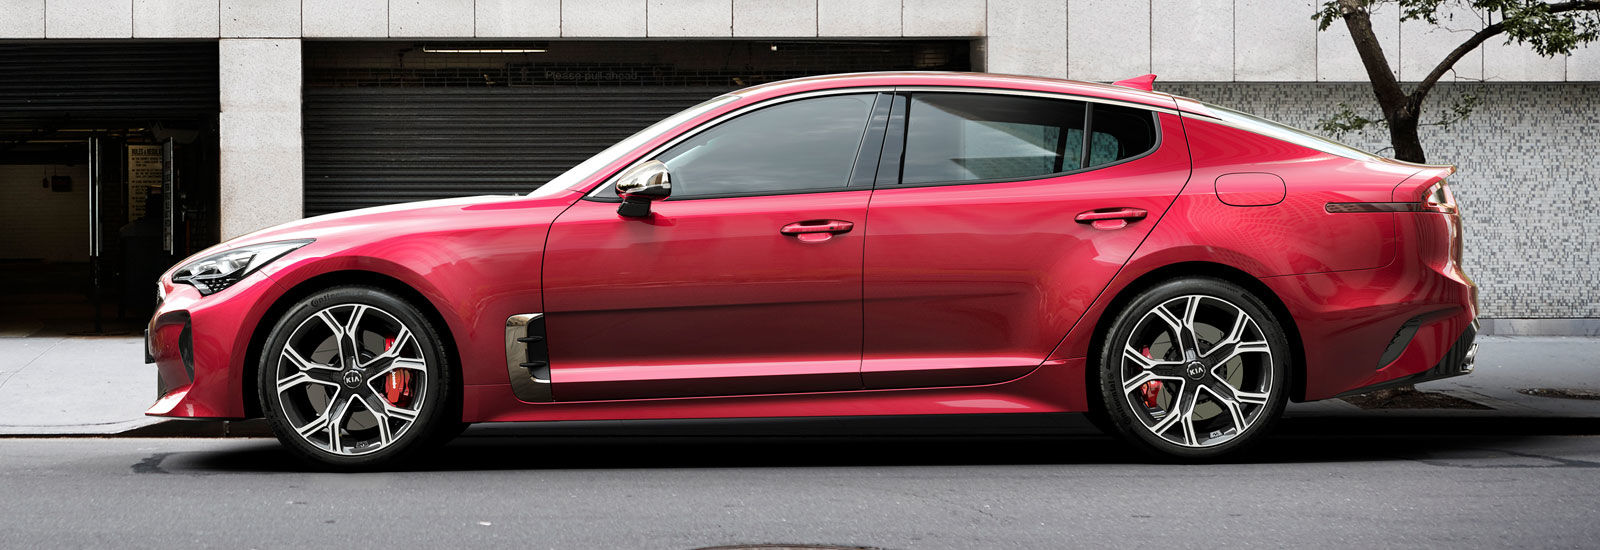 2018 kia autos. brilliant 2018 red kia stinger gt side profile shot intended 2018 kia autos